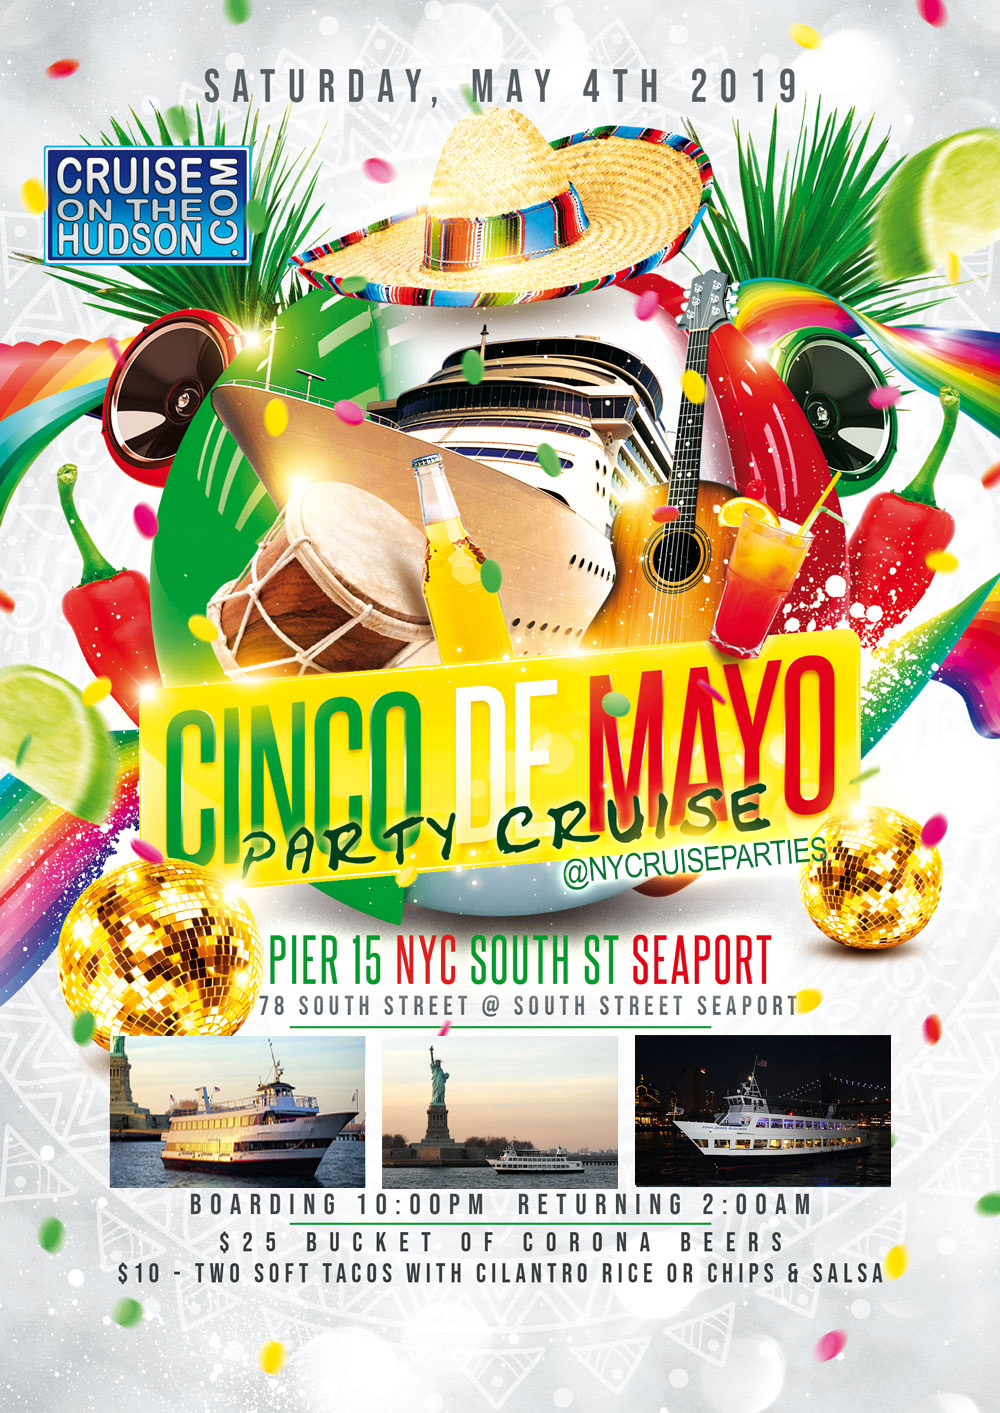 Cinco De Mayo Yacht Party Dance Cruise NYC Boat Party Hornblower JJ Audubon Yacht boat Pier 15 NYC South Street Seaport